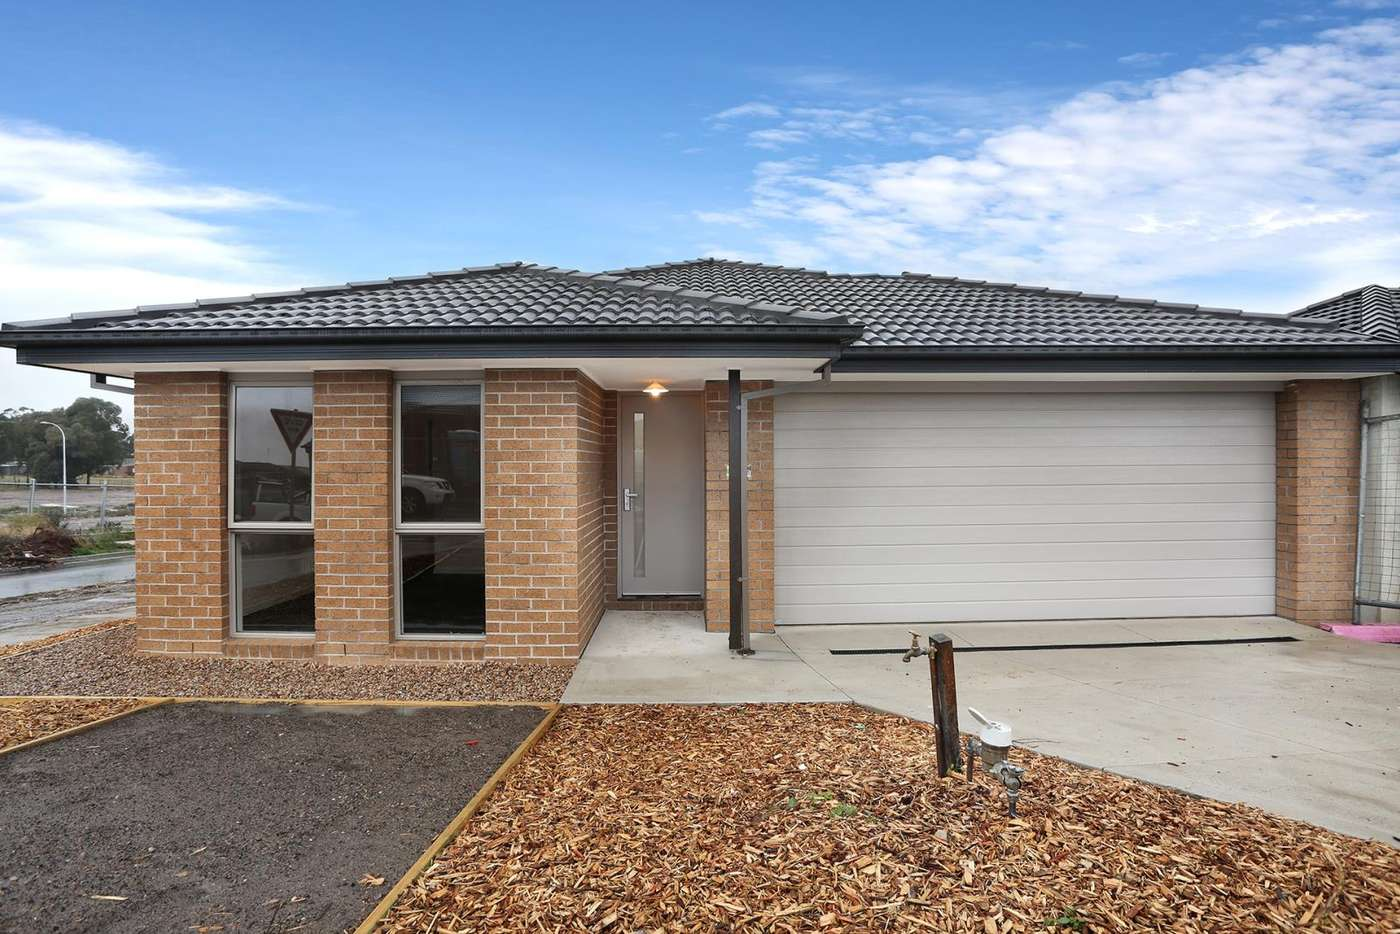 Main view of Homely house listing, 20 Clancy Way, Doreen VIC 3754